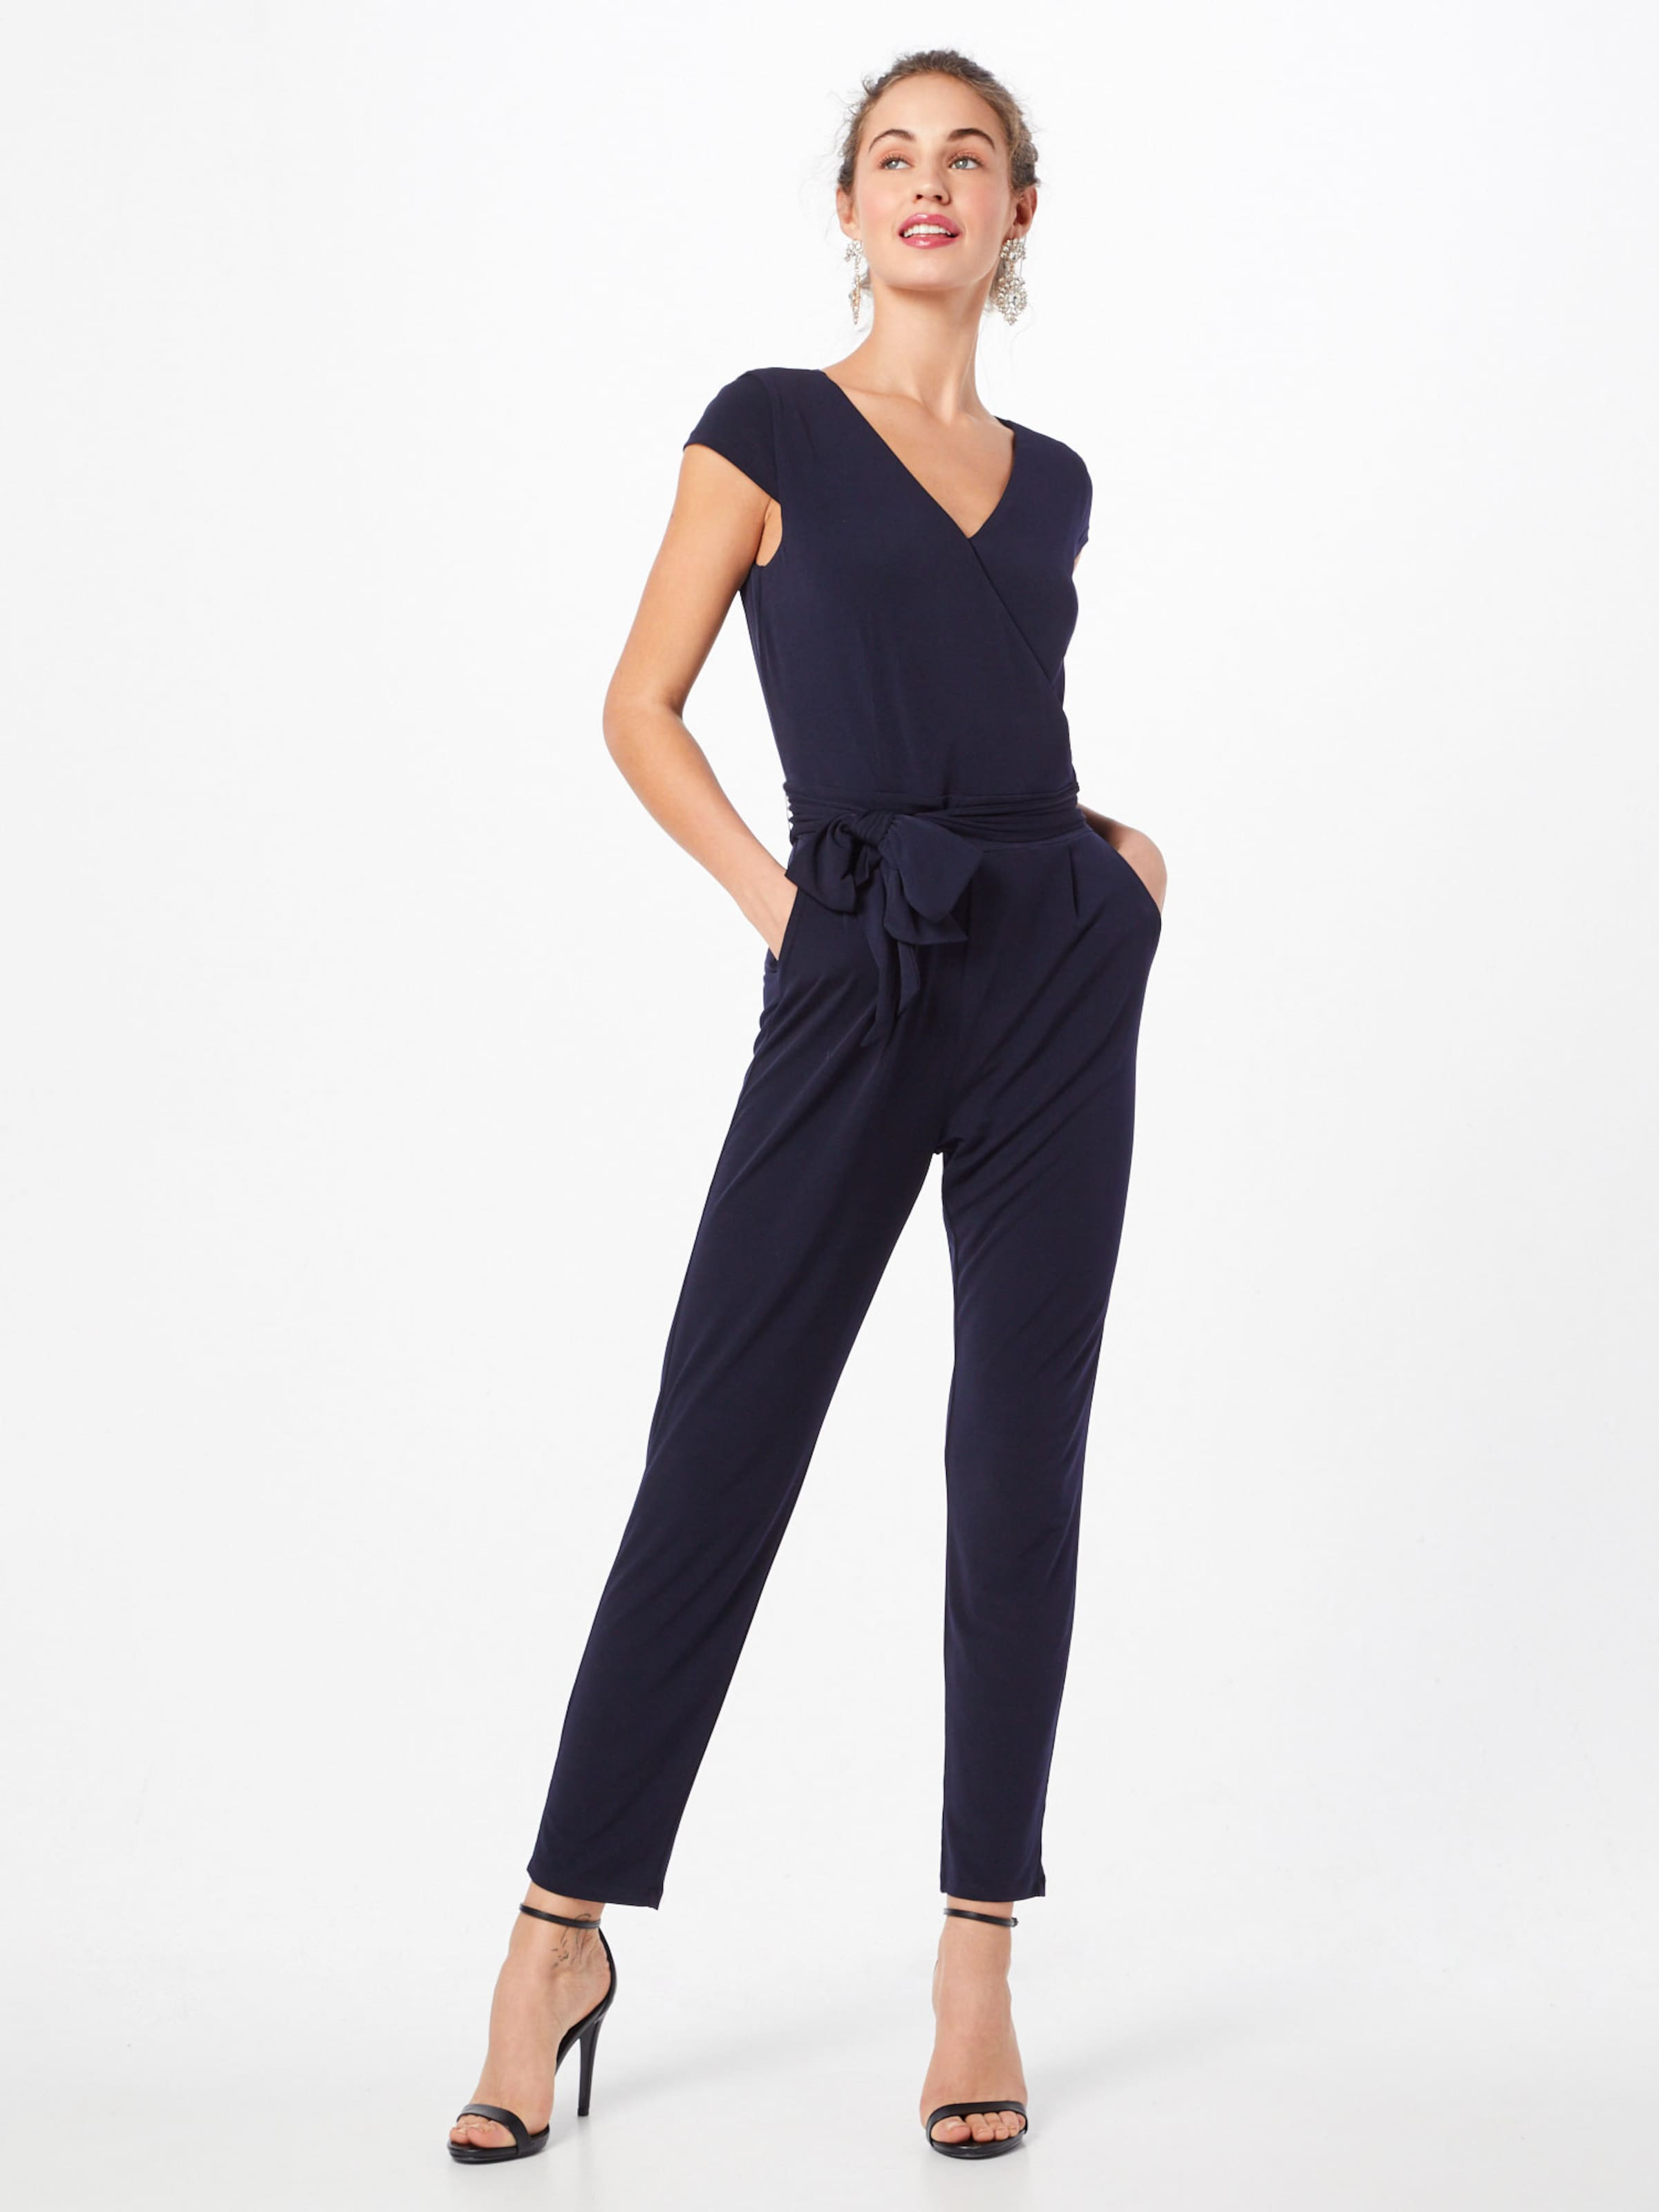 Collection Collection Jumpsuit Esprit In Esprit Jumpsuit Navy Navy In Esprit vmON8wn0